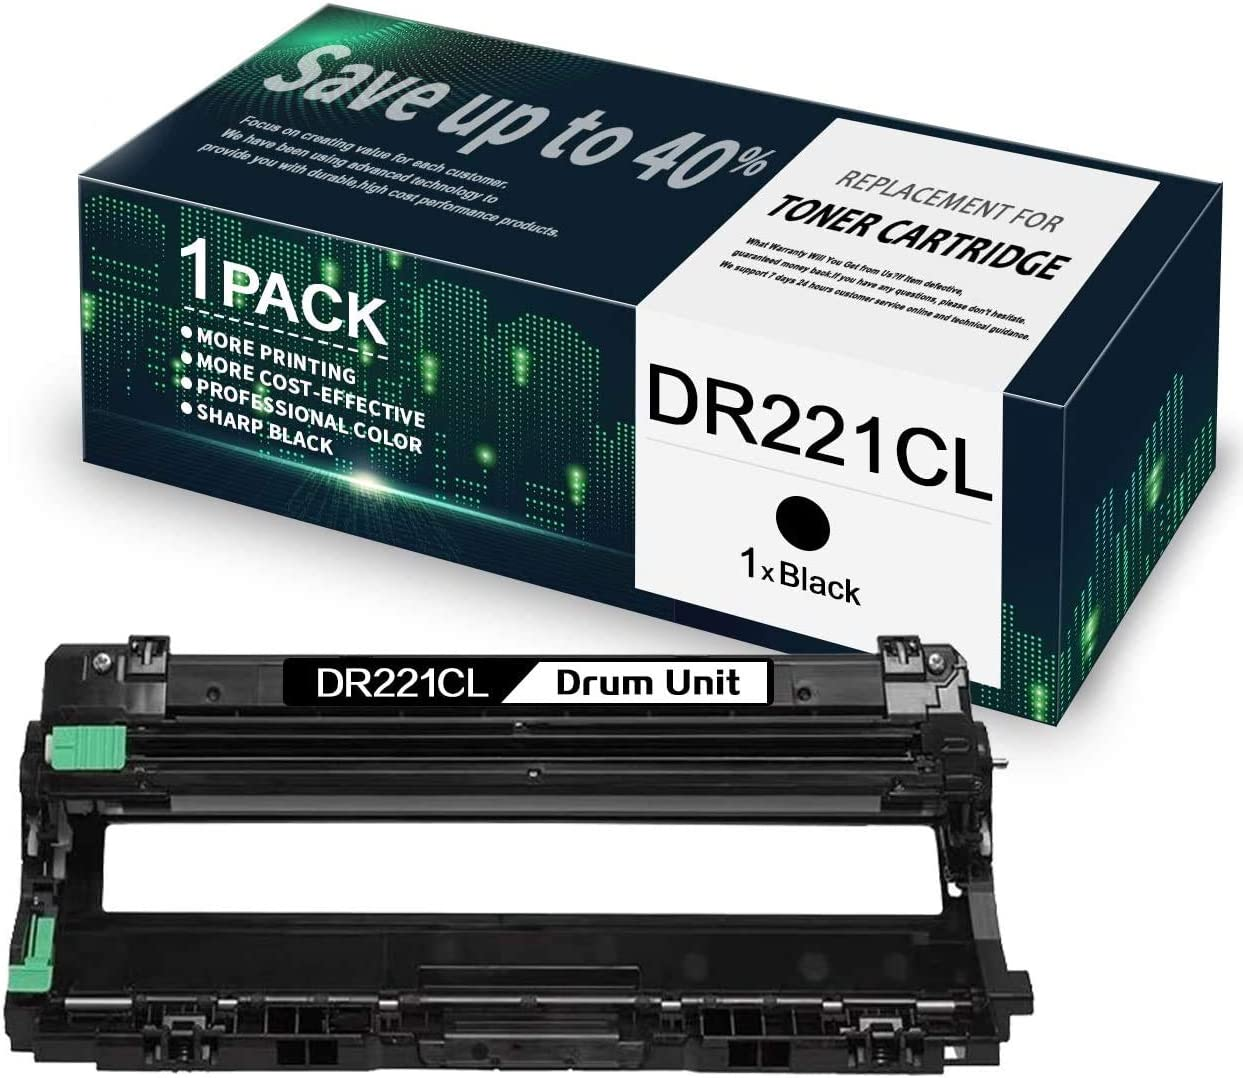 2 Pack by VaserInk Cyan TN225C Compatible Toner Cartridge Replacement for Brother MFC-9130CW MFC-9140CDN MFC-9330CDW MFC-9340CDW HL-3140CW HL-3150CDN HL-3170CDW HL-3180CDW DCP-9015CDW DCP-9020CDN